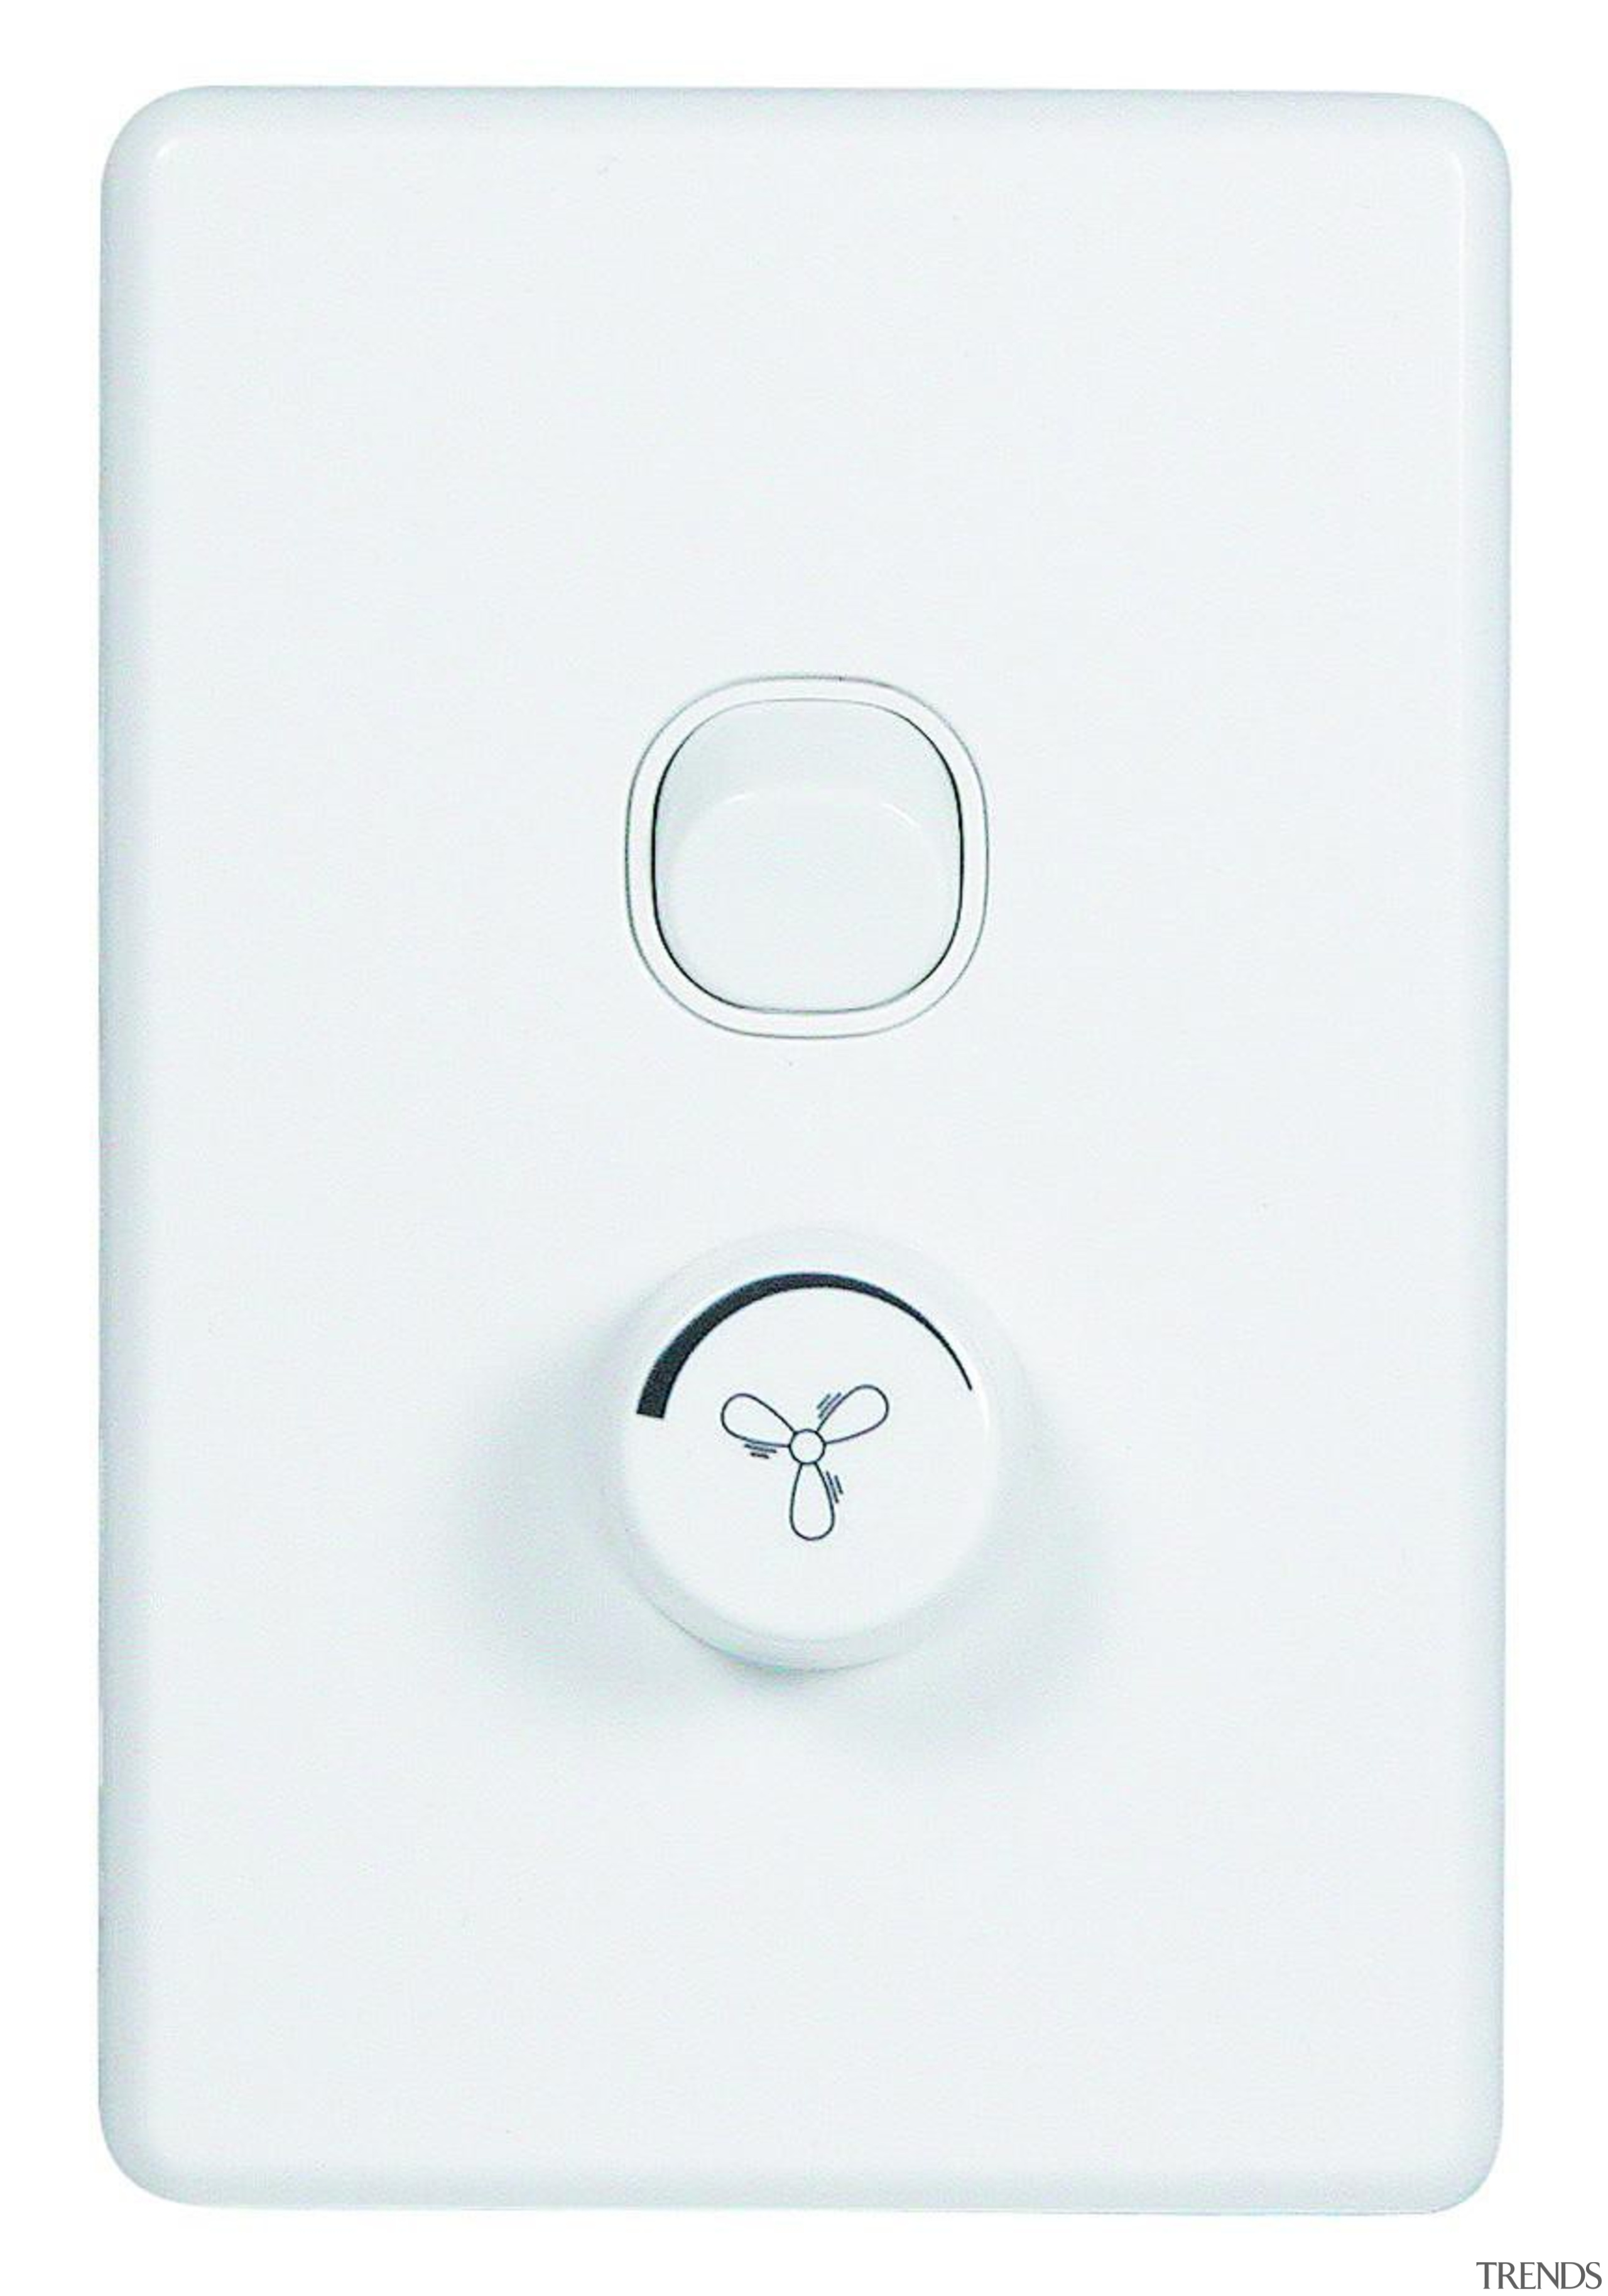 Classic C2000 switch with dimmer White - Dimmer electronics, light switch, product, switch, technology, white